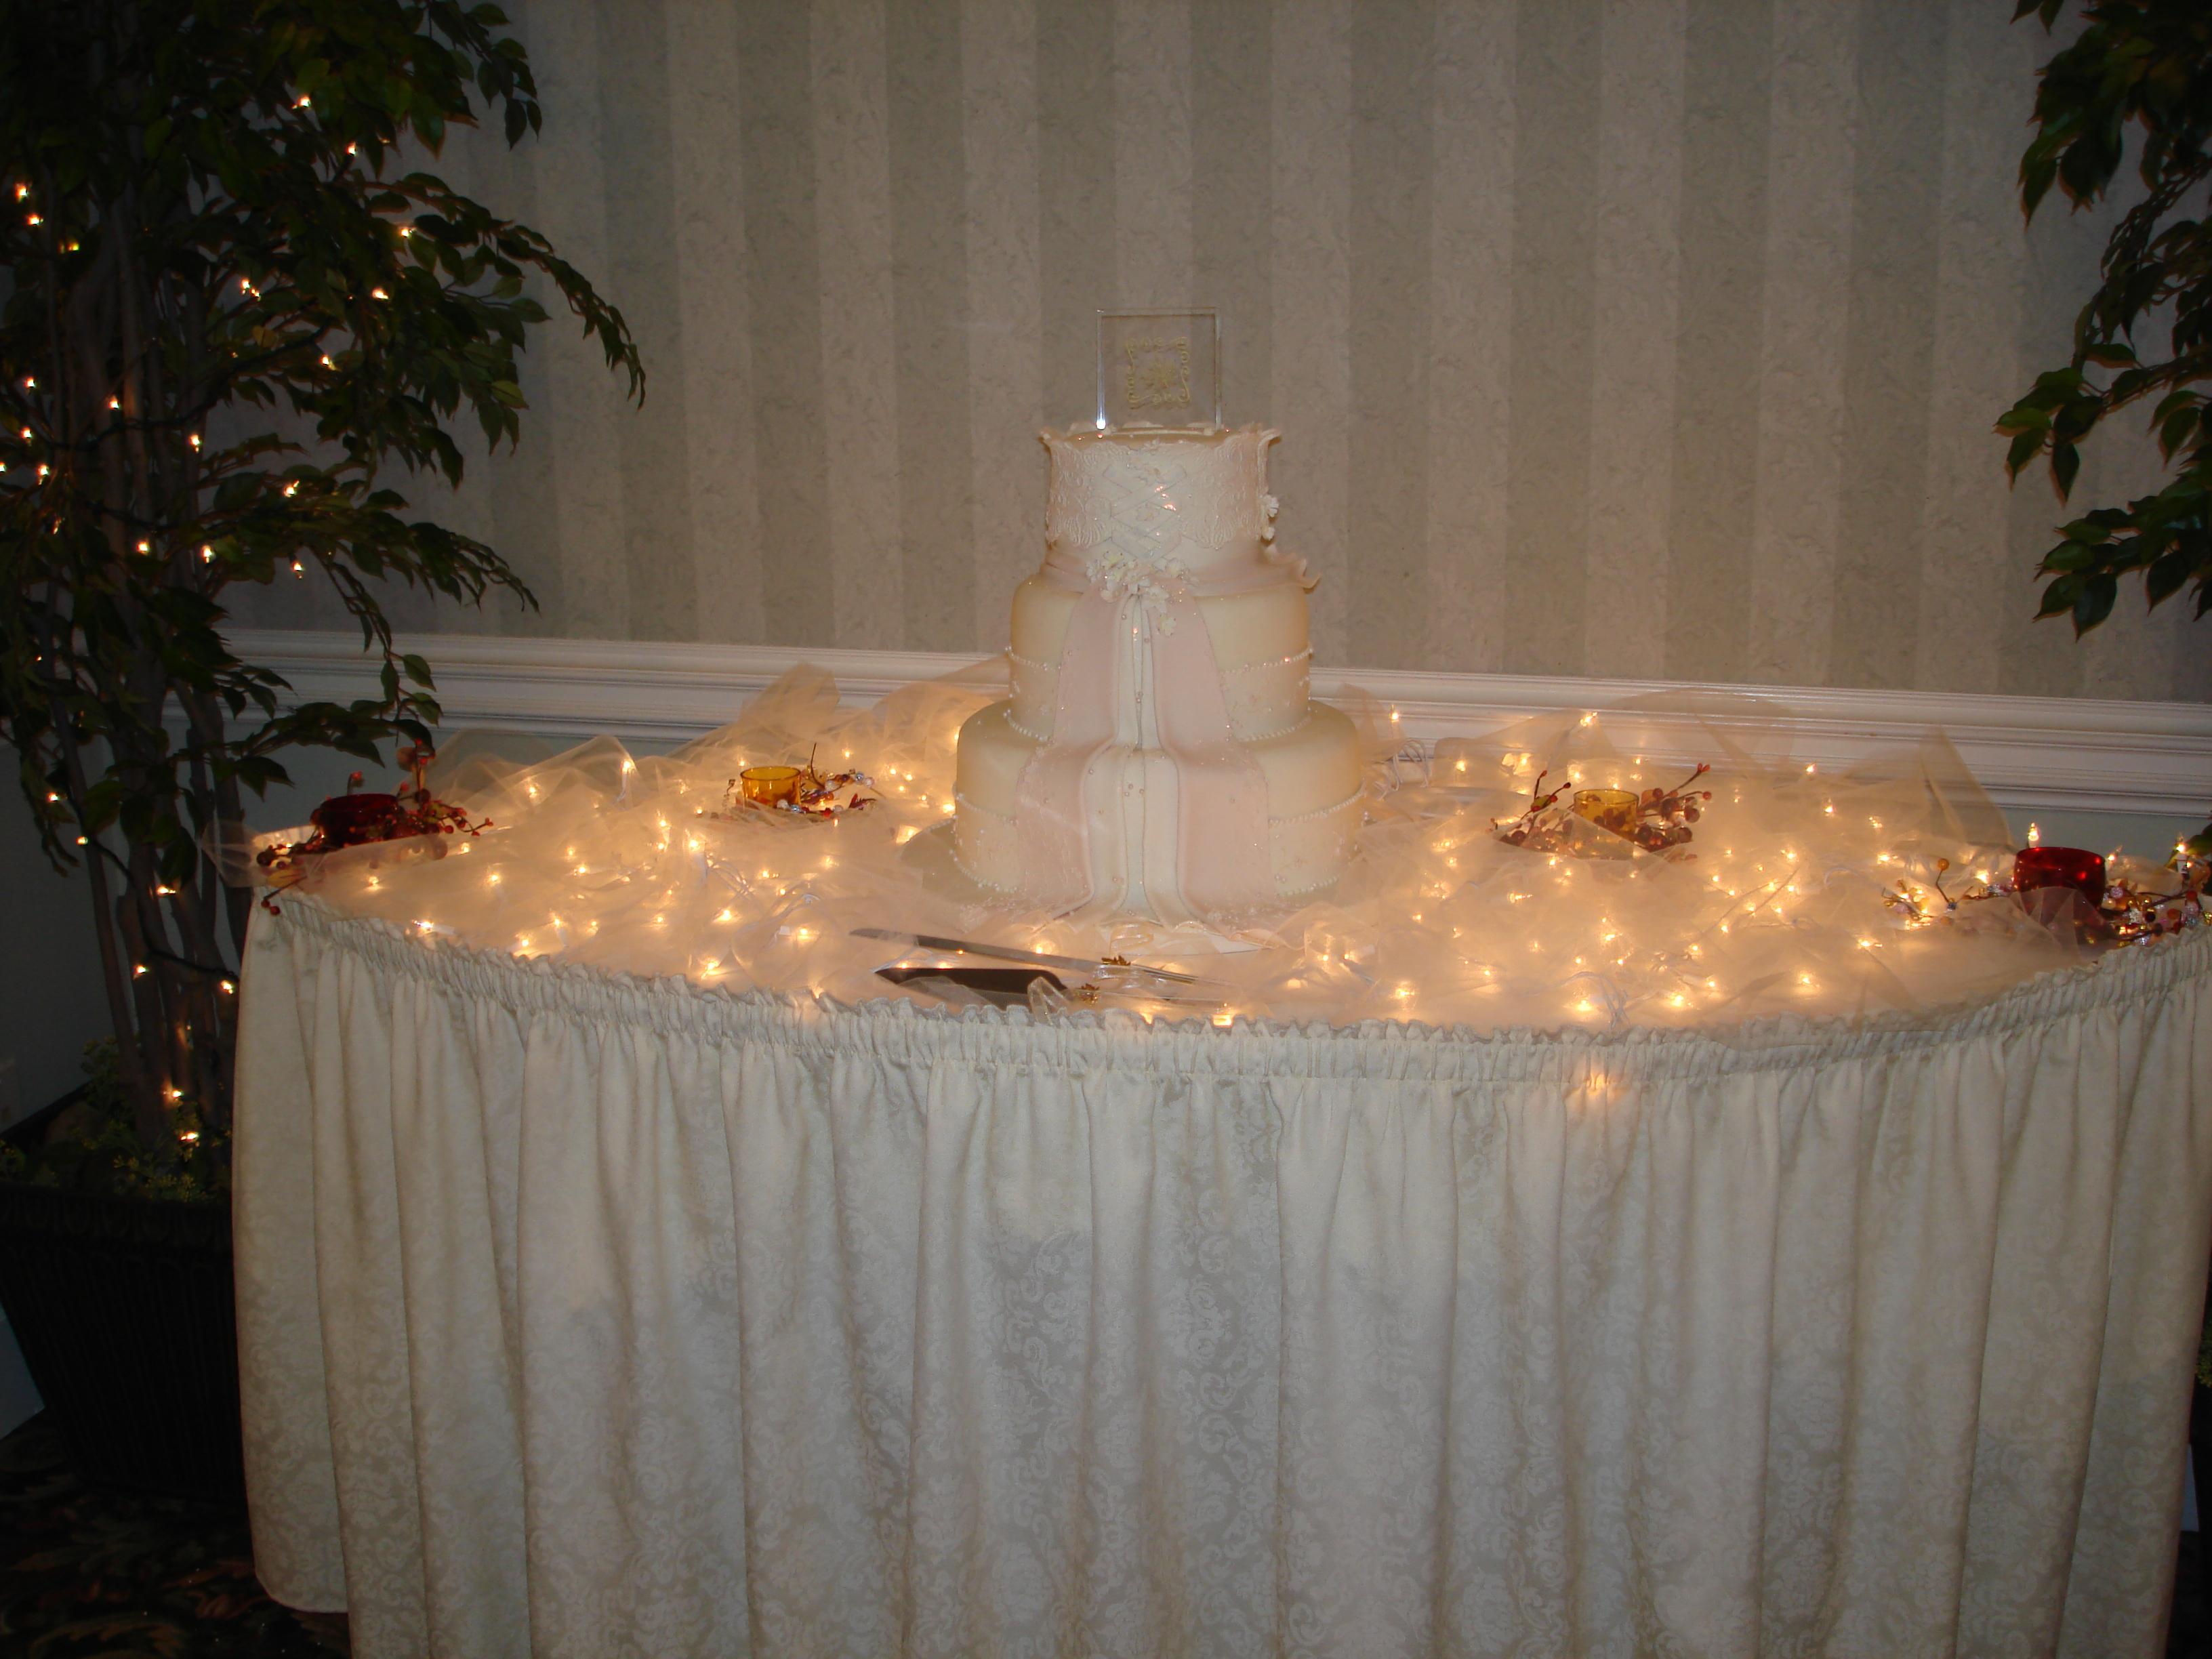 Reception, Flowers & Decor, Cakes, white, cake, Lighting, Wedding